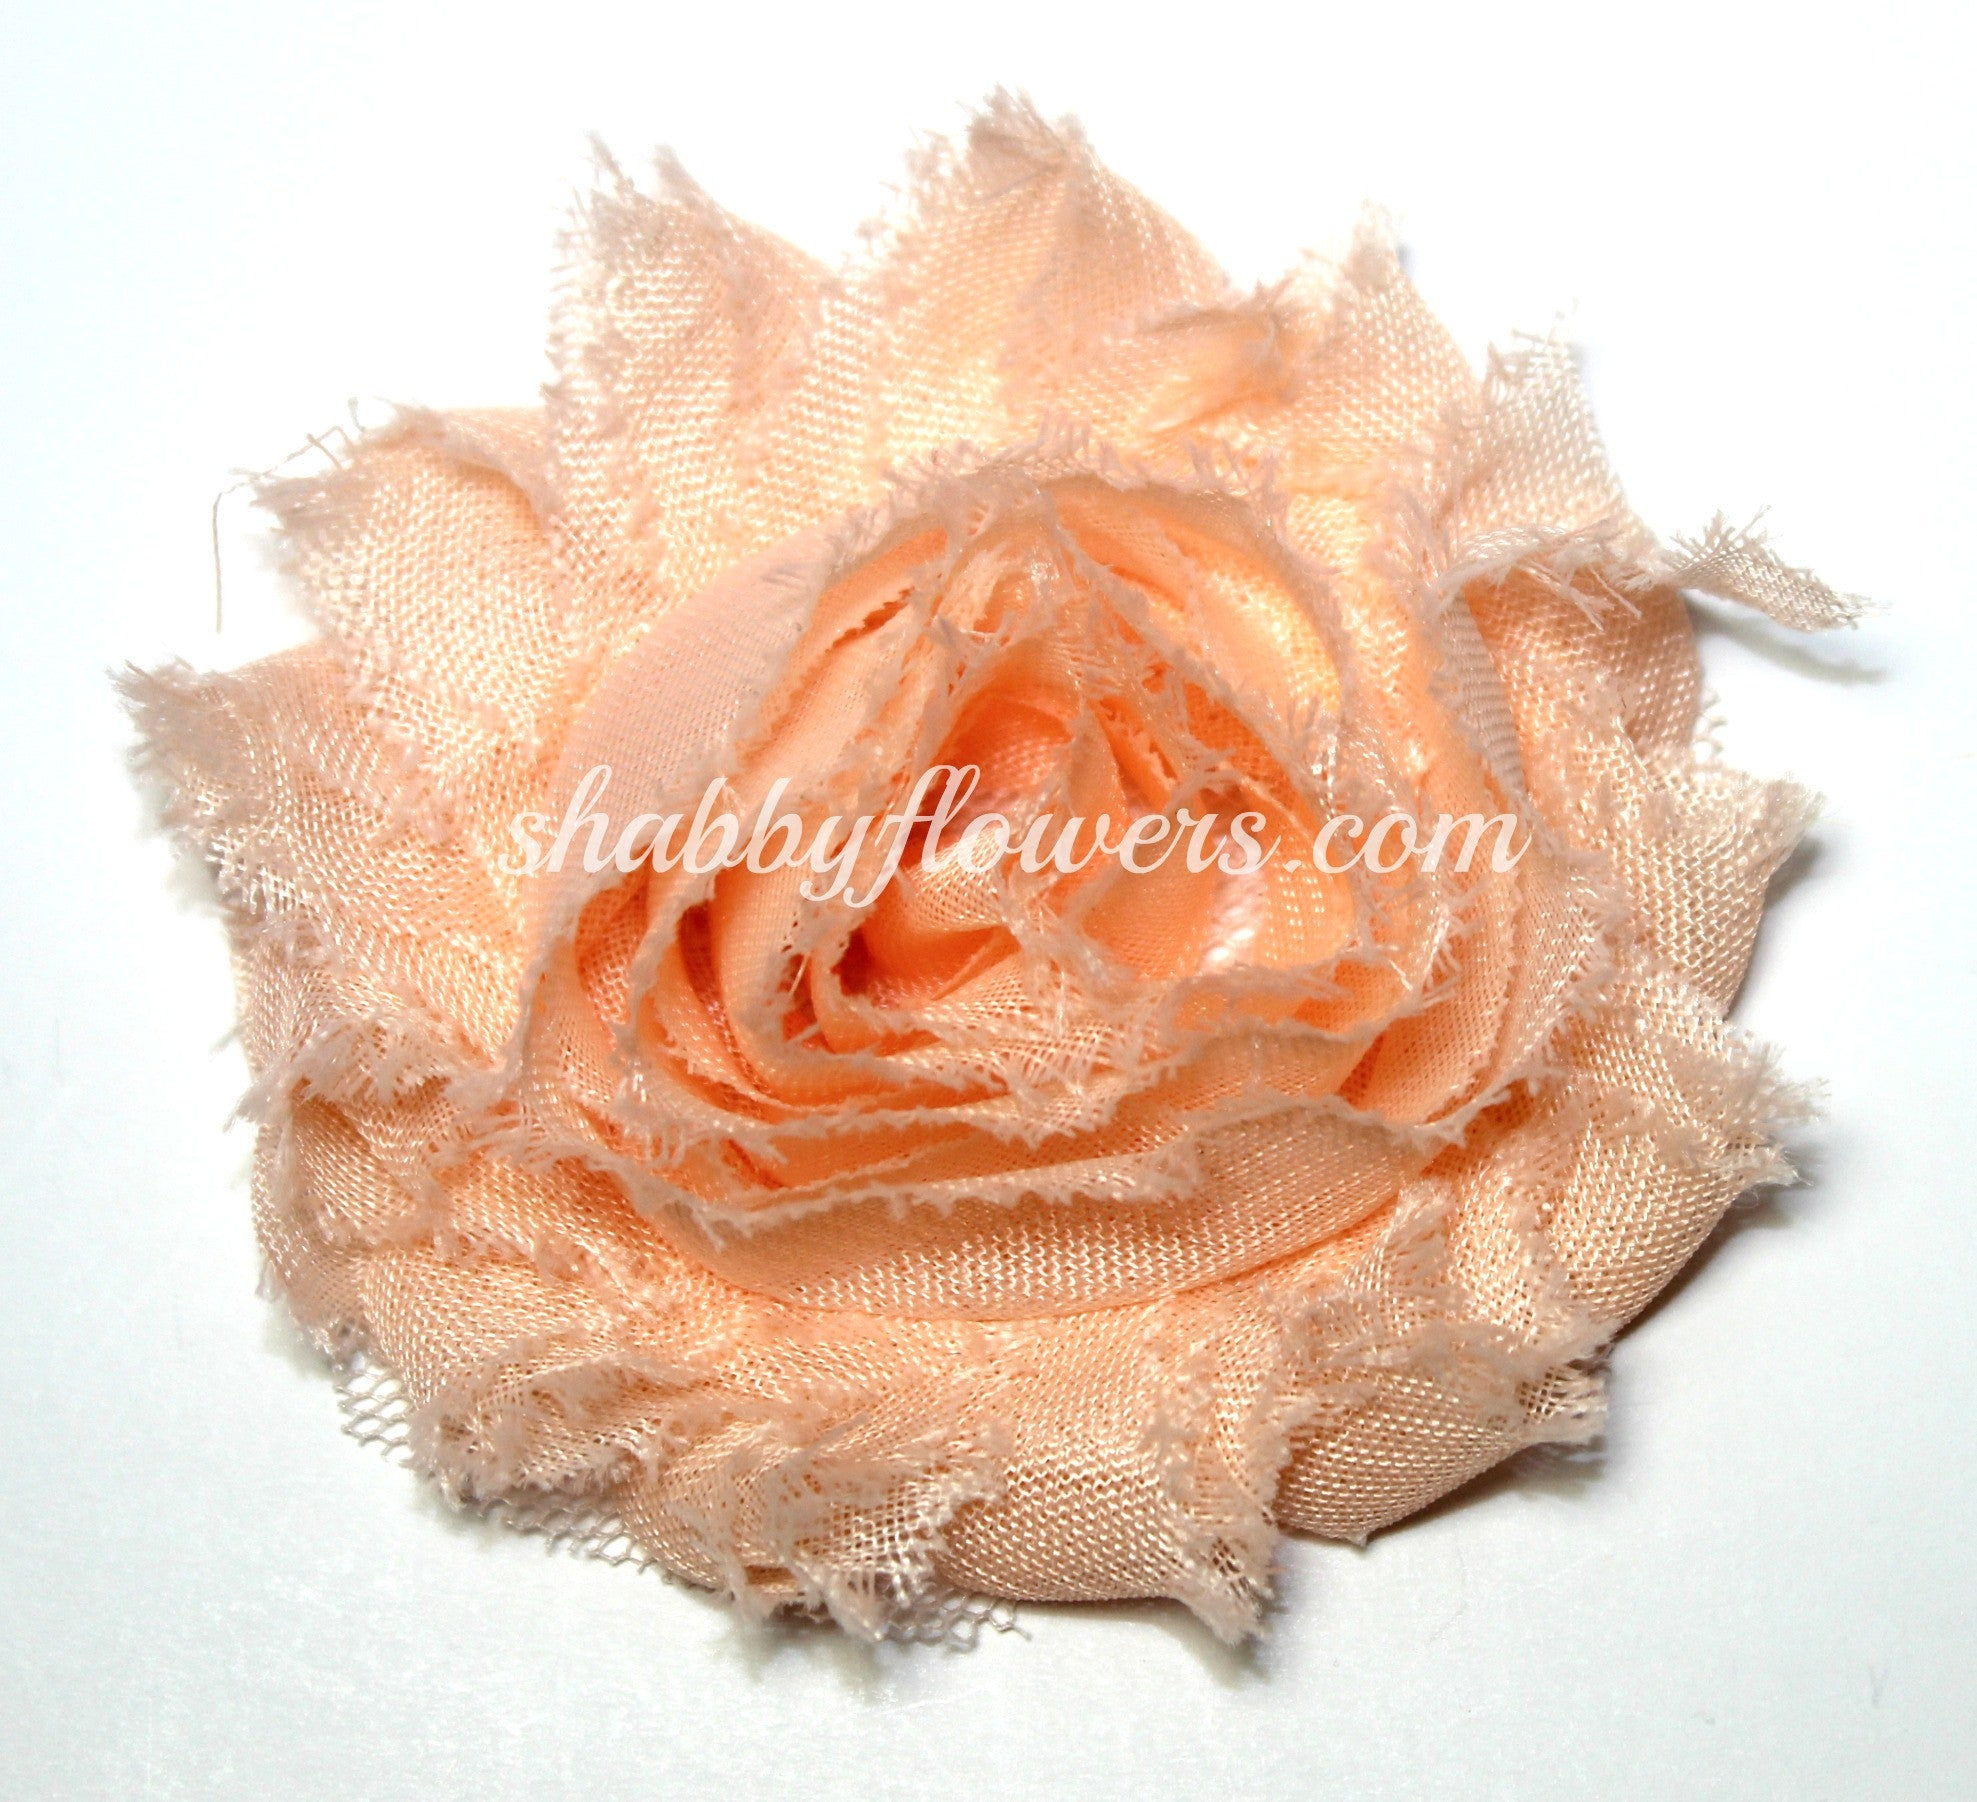 Shabby Flower - Peach Blush - shabbyflowers.com